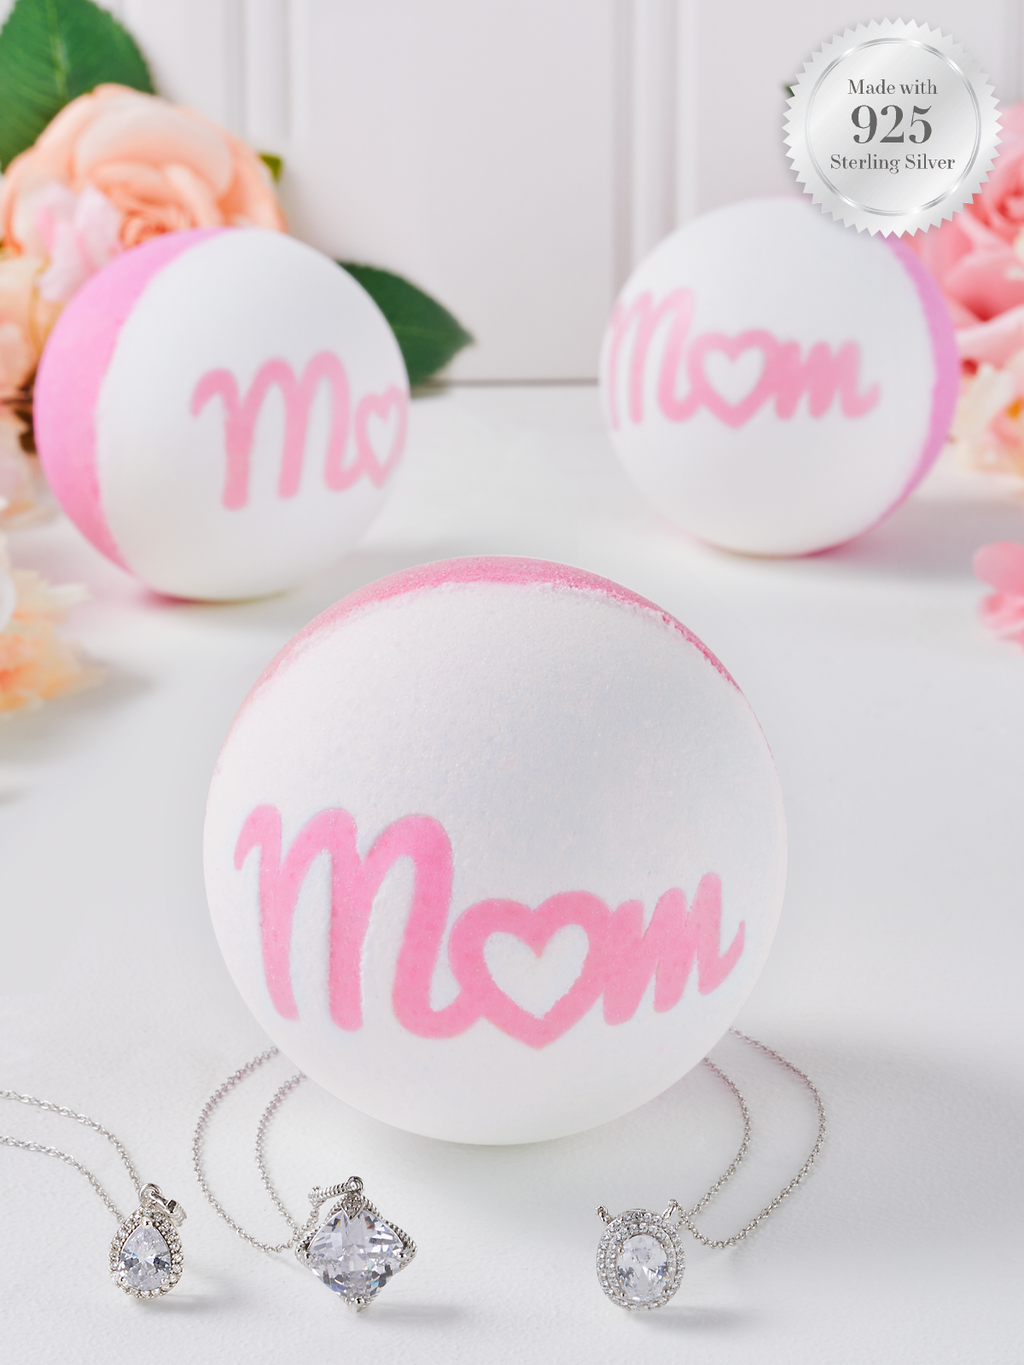 Mom Bath Bomb - 925 Sterling Silver Necklace Collection